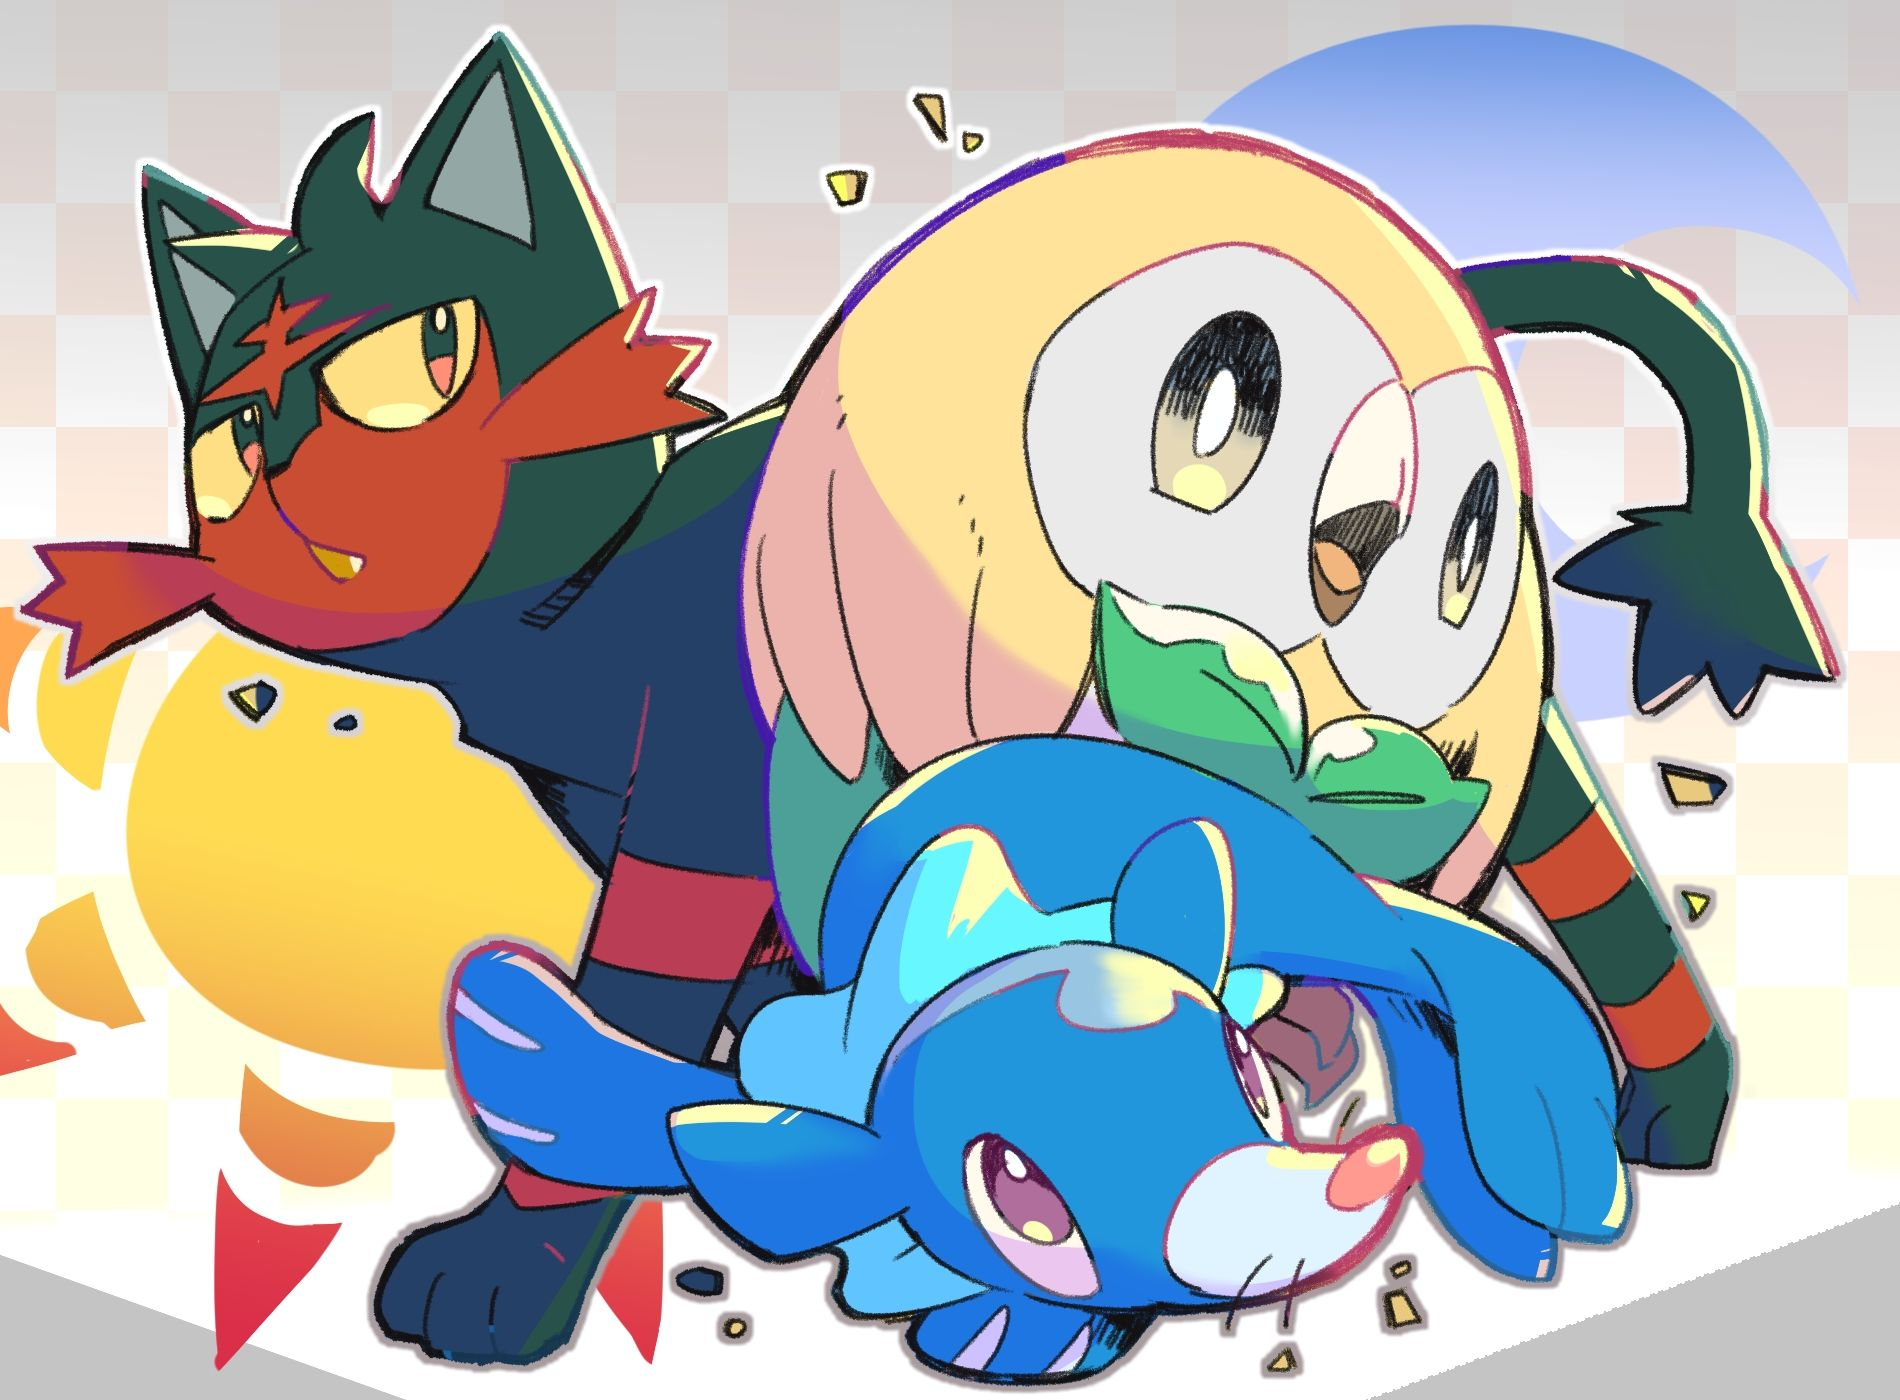 Pokemon coloring pages popplio - Pokemon Coloring Pages Rowlet Litten Rowlet And Popplio